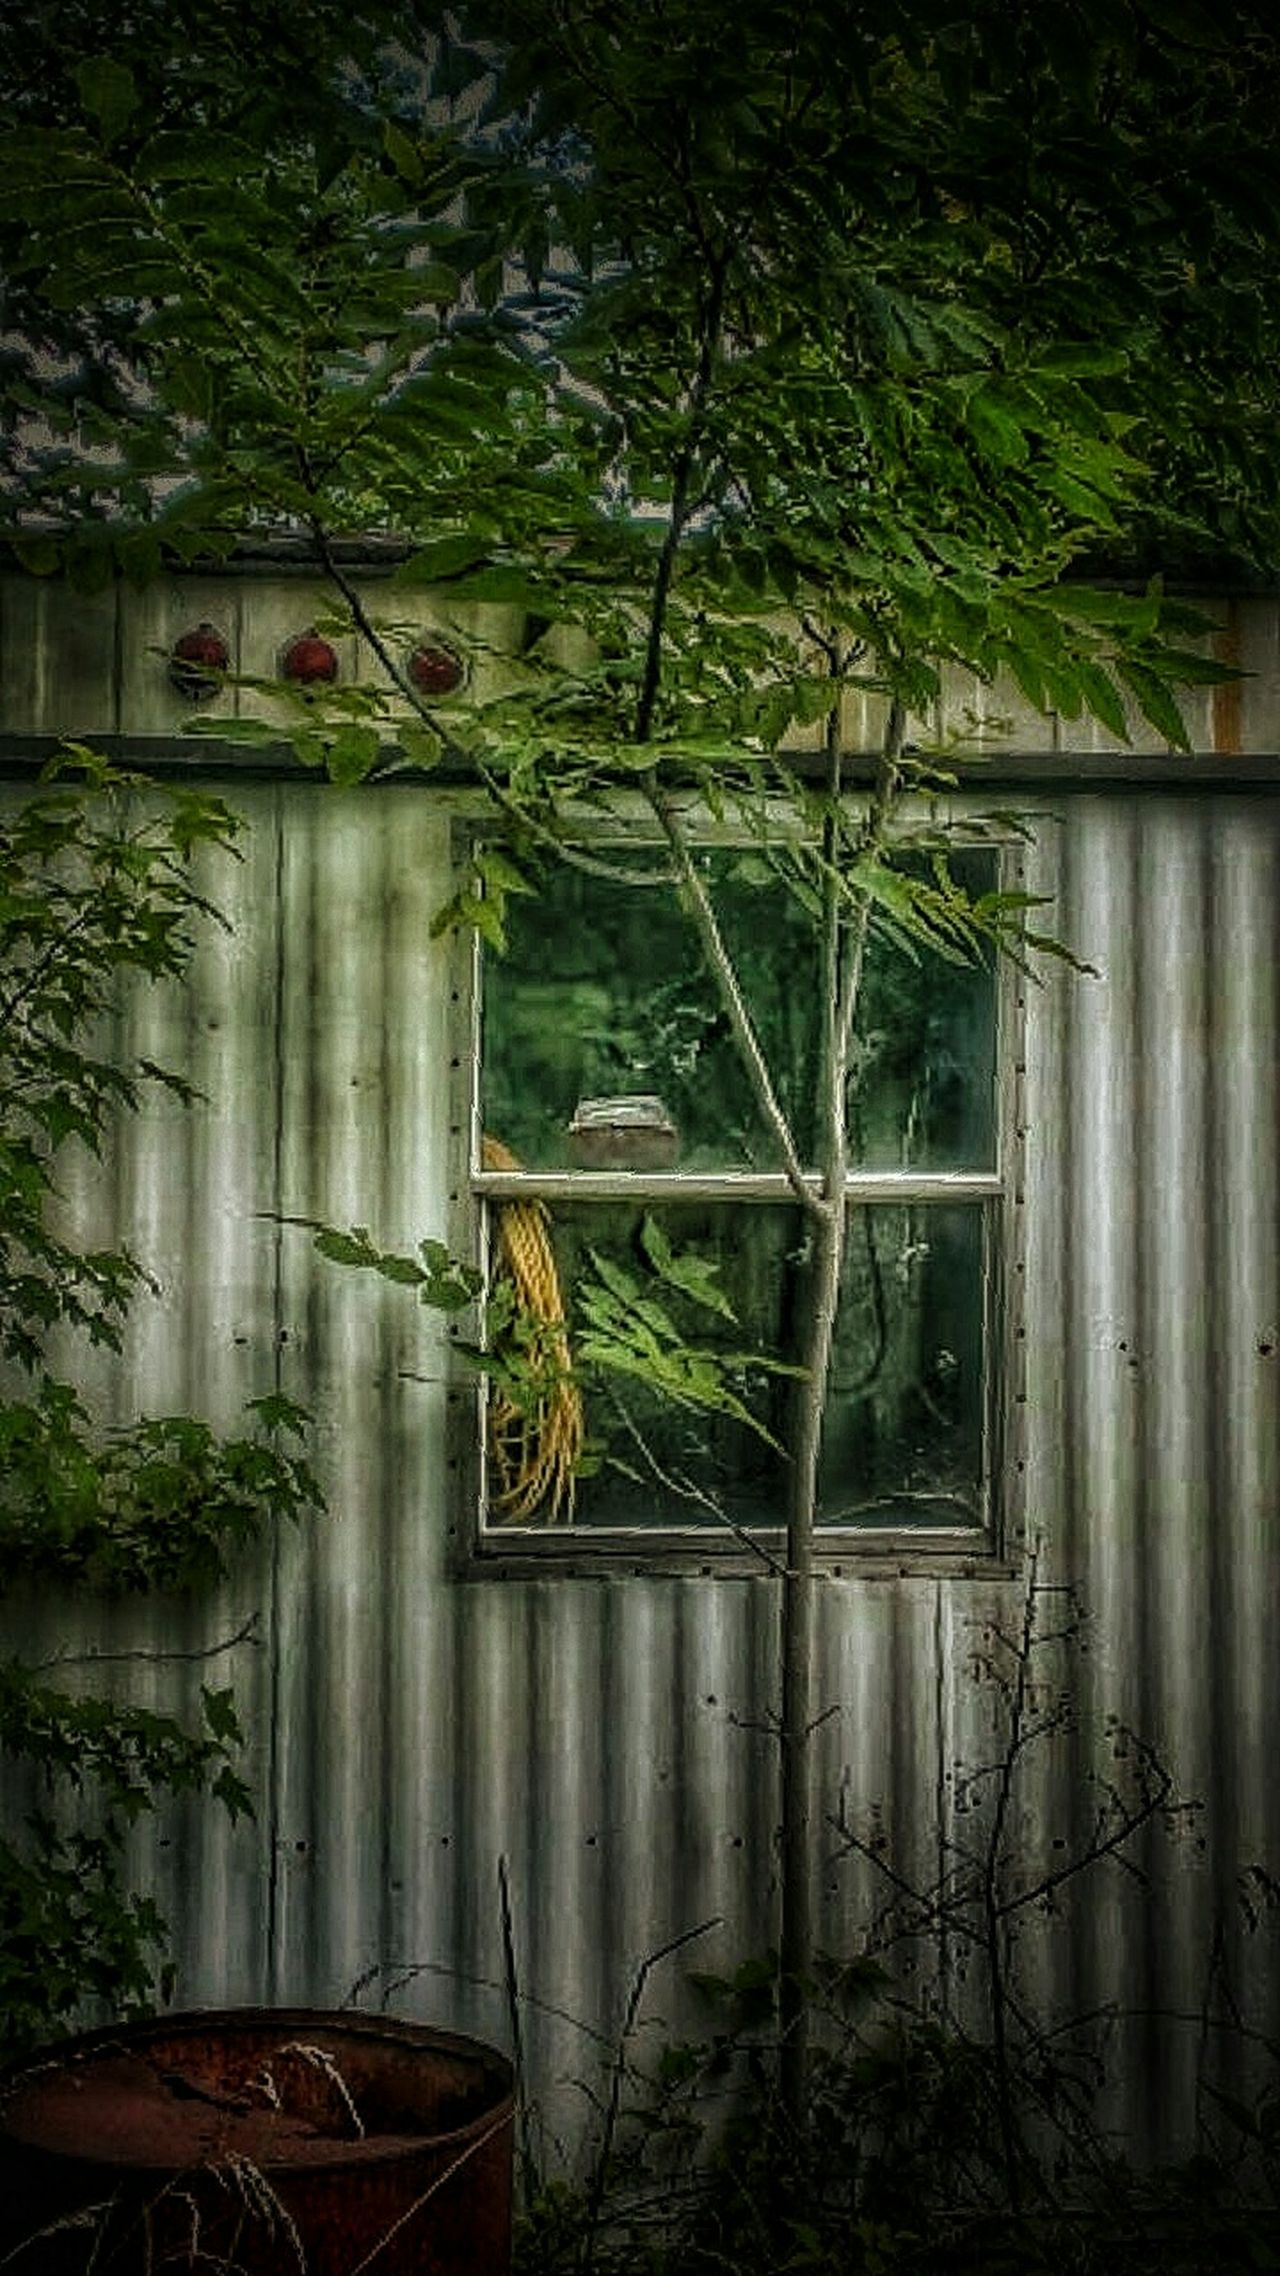 I Know Why The Caged Bird Sings... Tree Creeper Plant Abandoned Places Windows Abandoned Abandoned Buildings Building Exterior Abandoned & Derelict AMPt - Abandon Tresspassing For Art Broken Window Weathered Rural America Rural Decay Damaged Creepy Atmoshpere Rural Scene Window House Residential Building Rural Exploration Ivy Wall Deterioration Creepy Houses